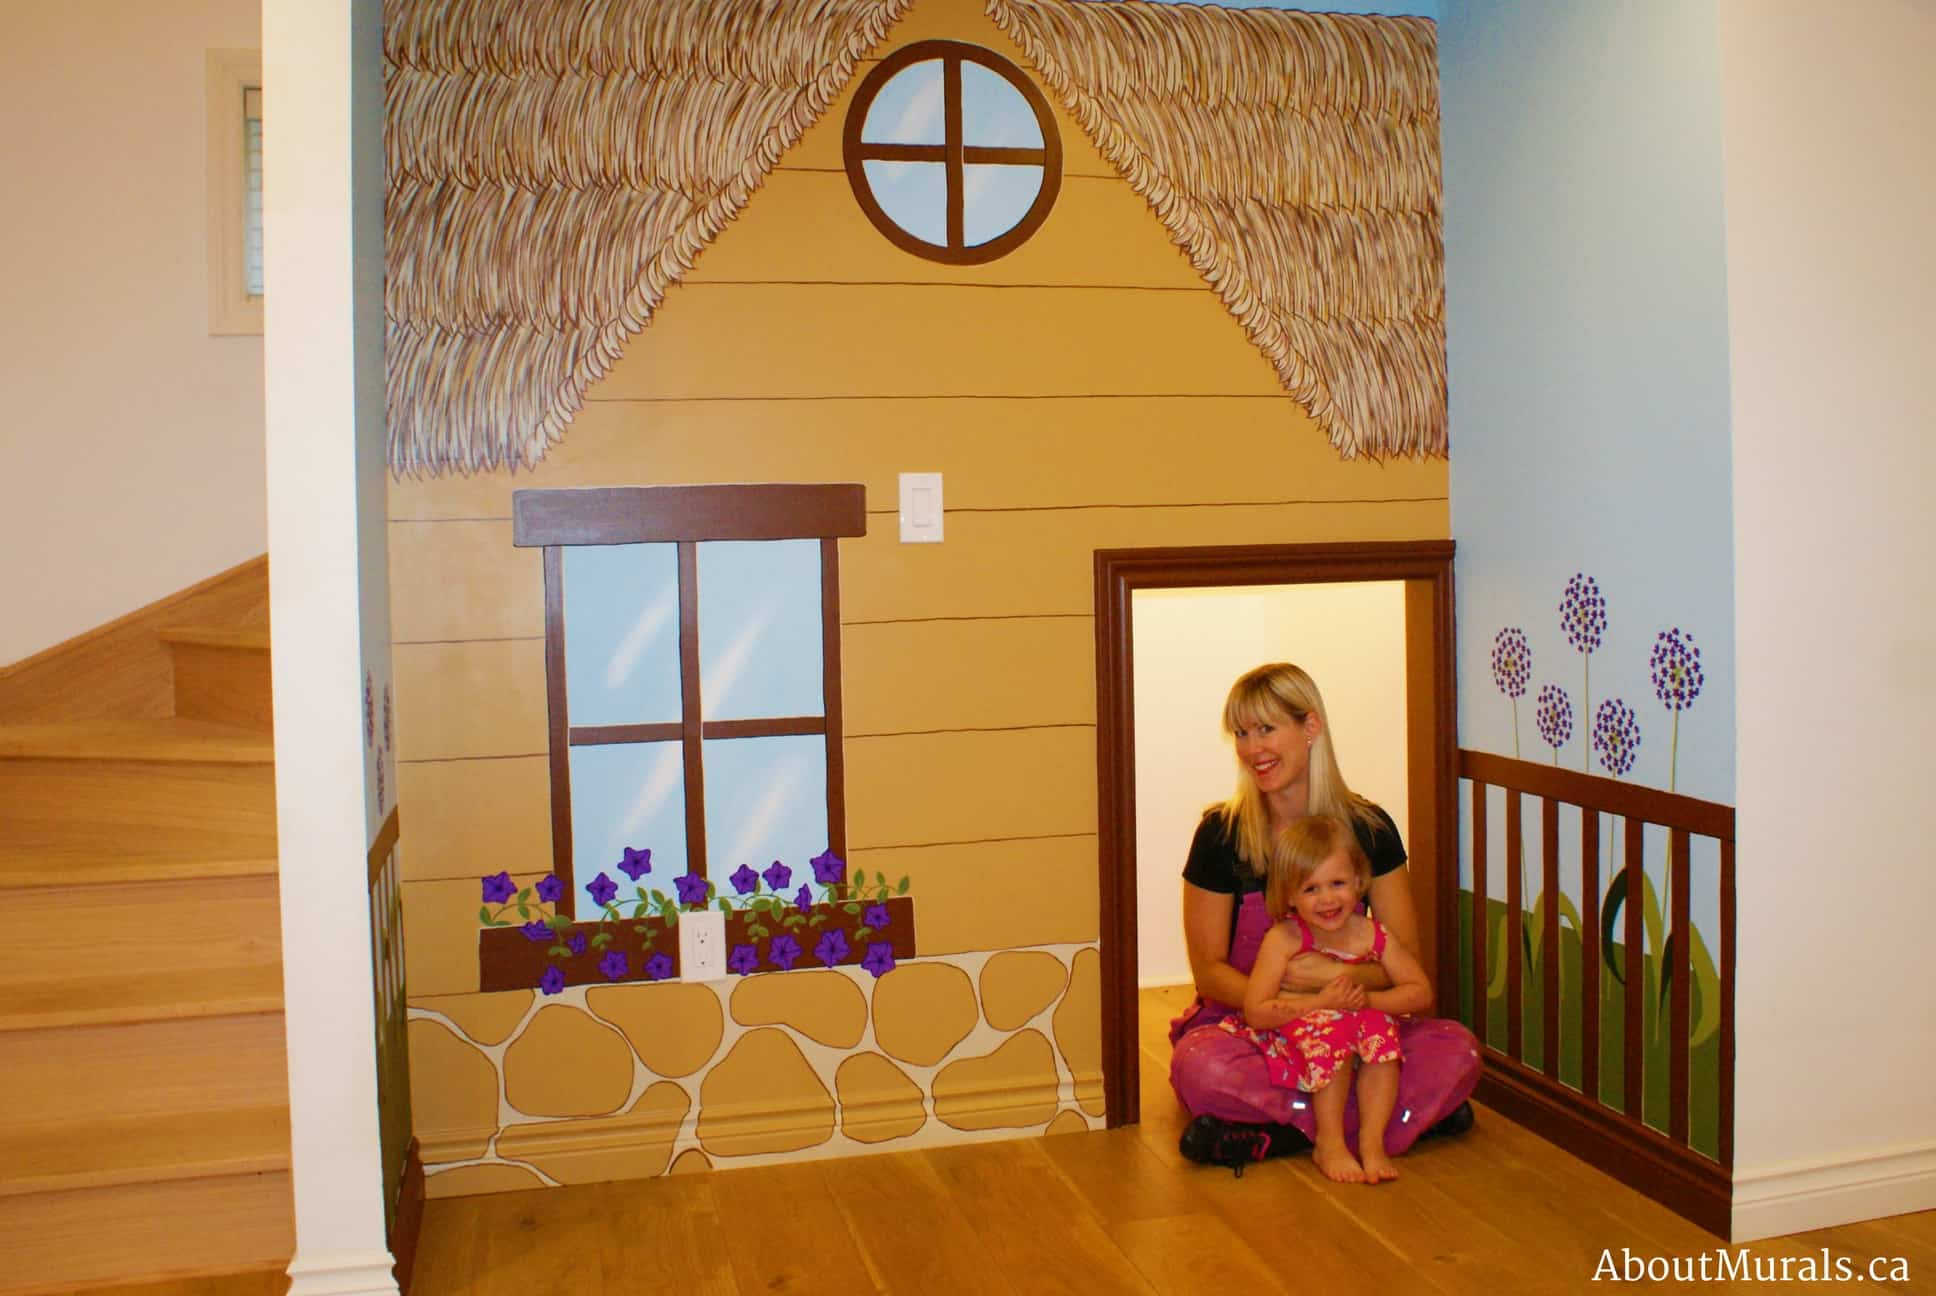 Mural painter Adrienne Scanlan sits in the doorway of a playhouse mural she painted